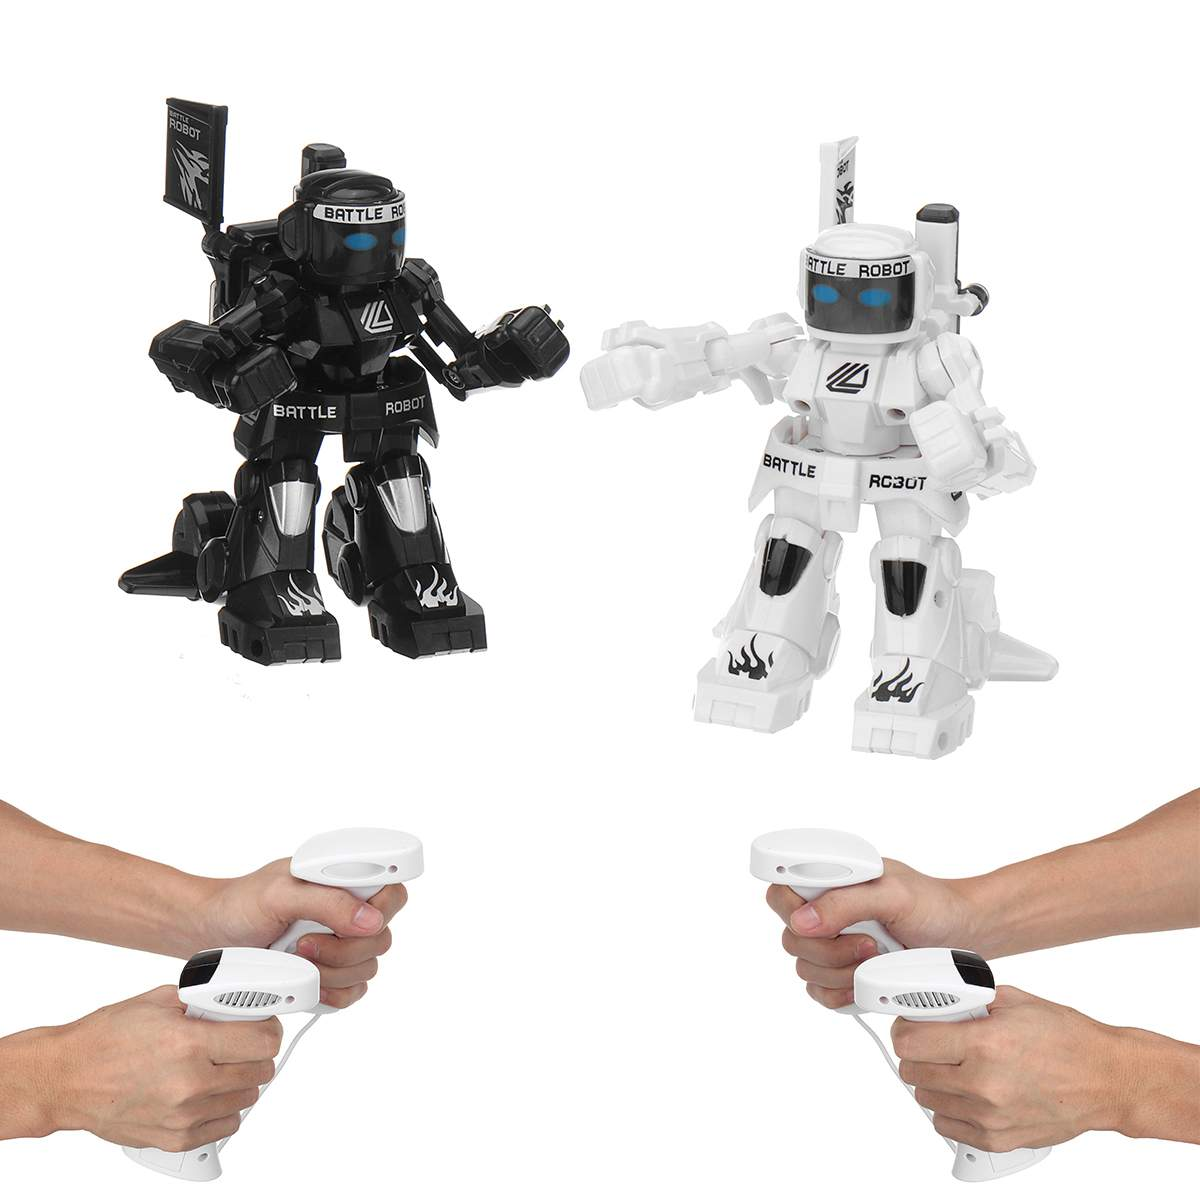 RC Battle Fighting Robot Remote Control Body Sense Control Smart robot intelligent educativo electric Toys For Children image